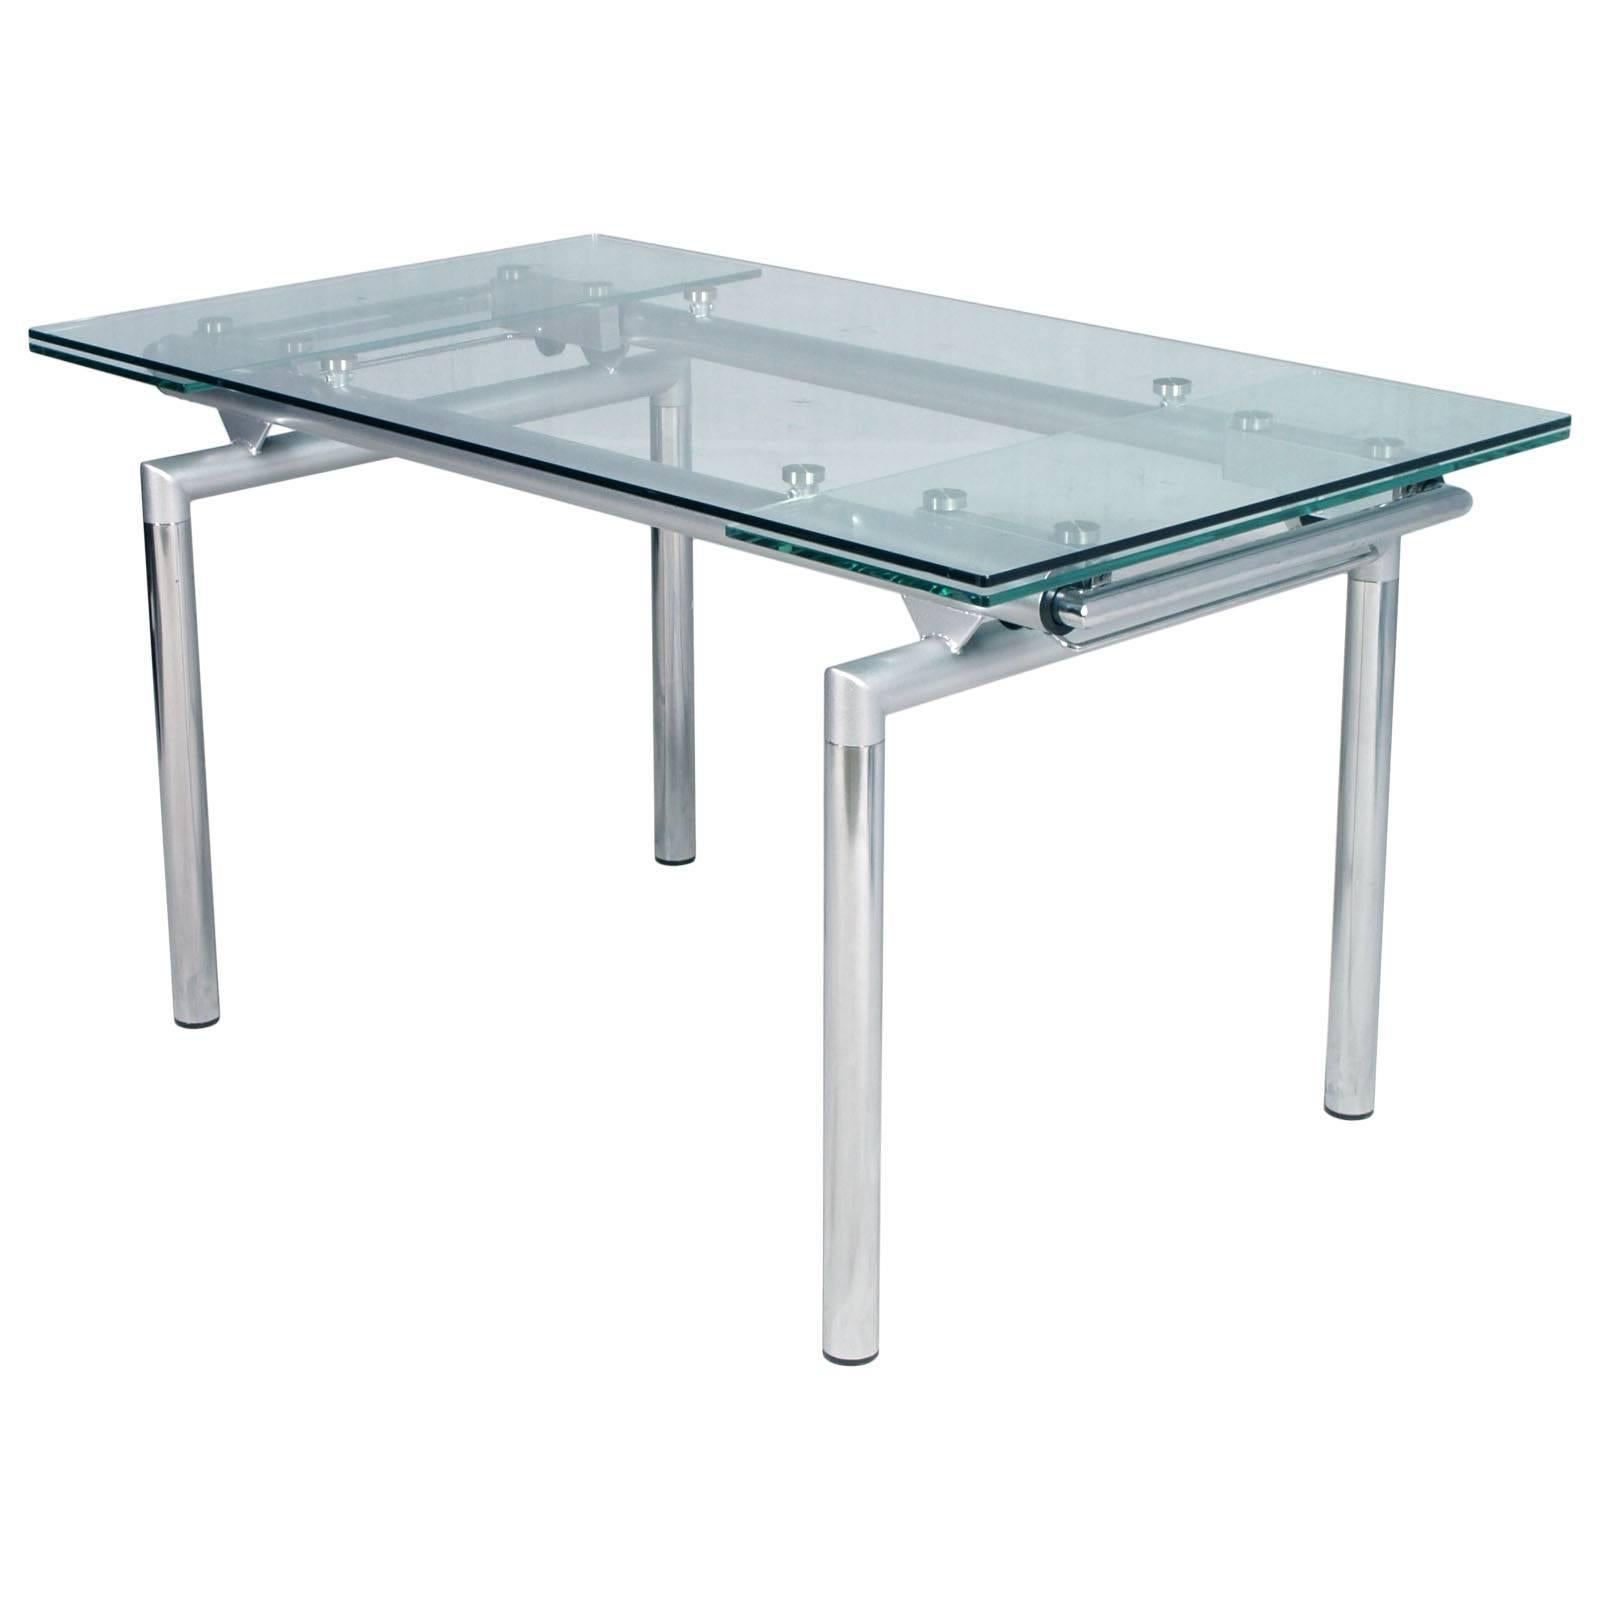 Italian 1960s Chromed and Crystal Extensible Tecno-Table, Le ...